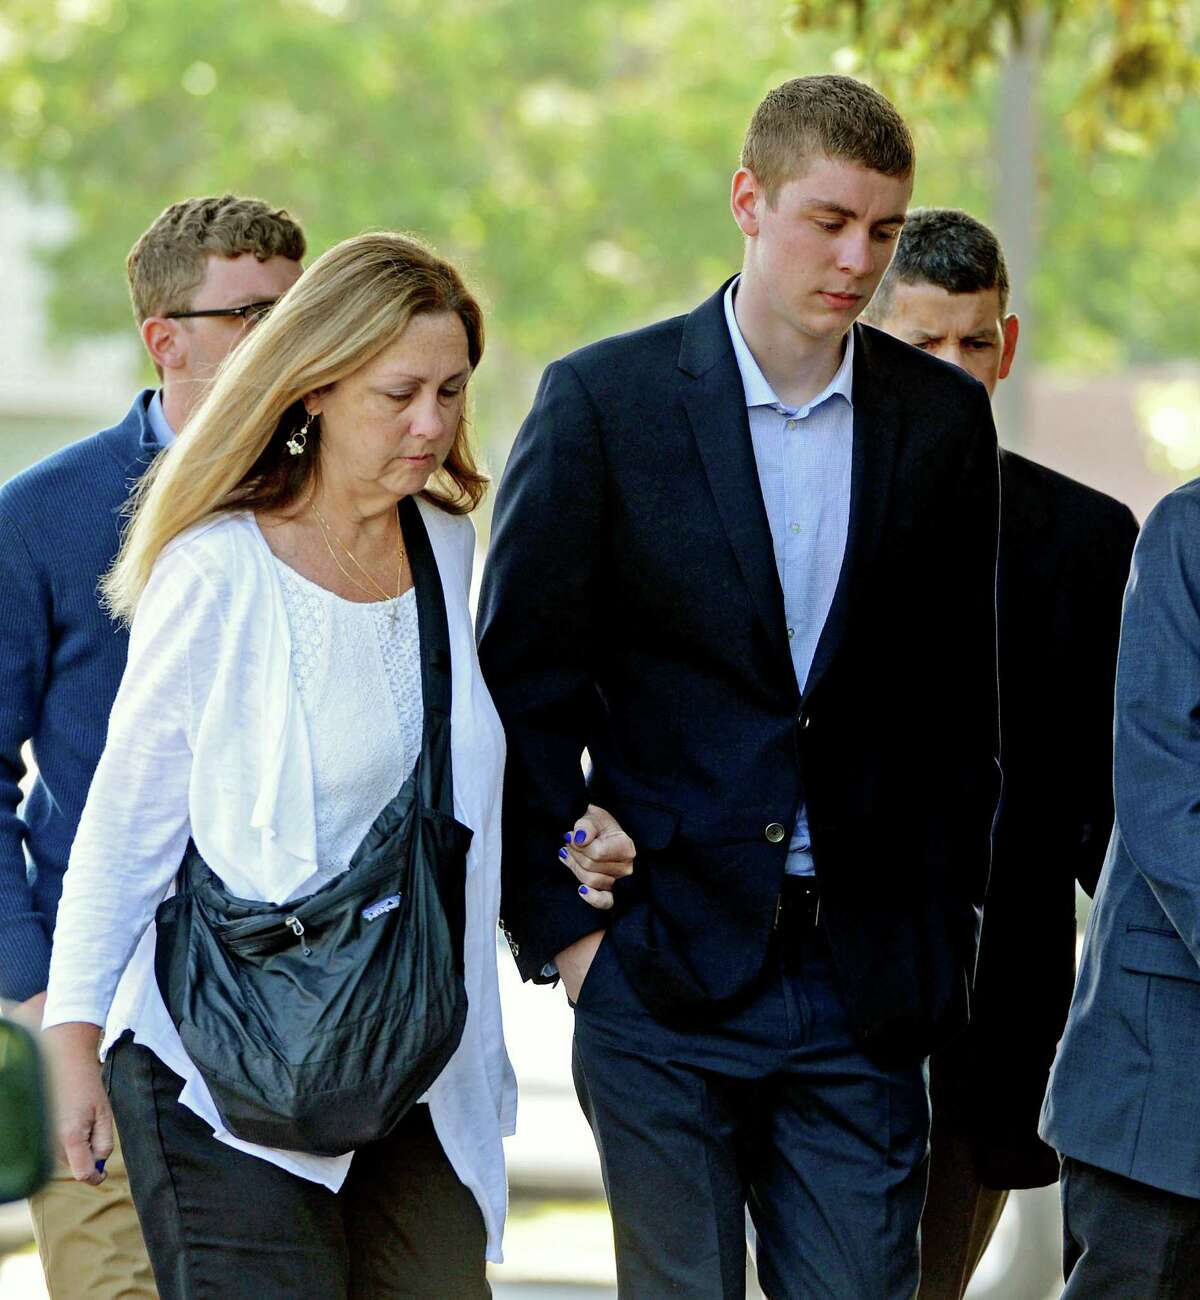 FILE - In this June 2, 2016 file photo, Brock Turner, right, makes his way into the Santa Clara Superior Courthouse in Palo Alto, Calif. A letter written by Turner's father was made public over the weekend by a Stanford law professor who wants the judge in the case removed from office because Brock Turner's sentencing. (Dan Honda/Bay Area News Group via AP, File) MAGS OUT NO SALES ORG XMIT: CAJOS201